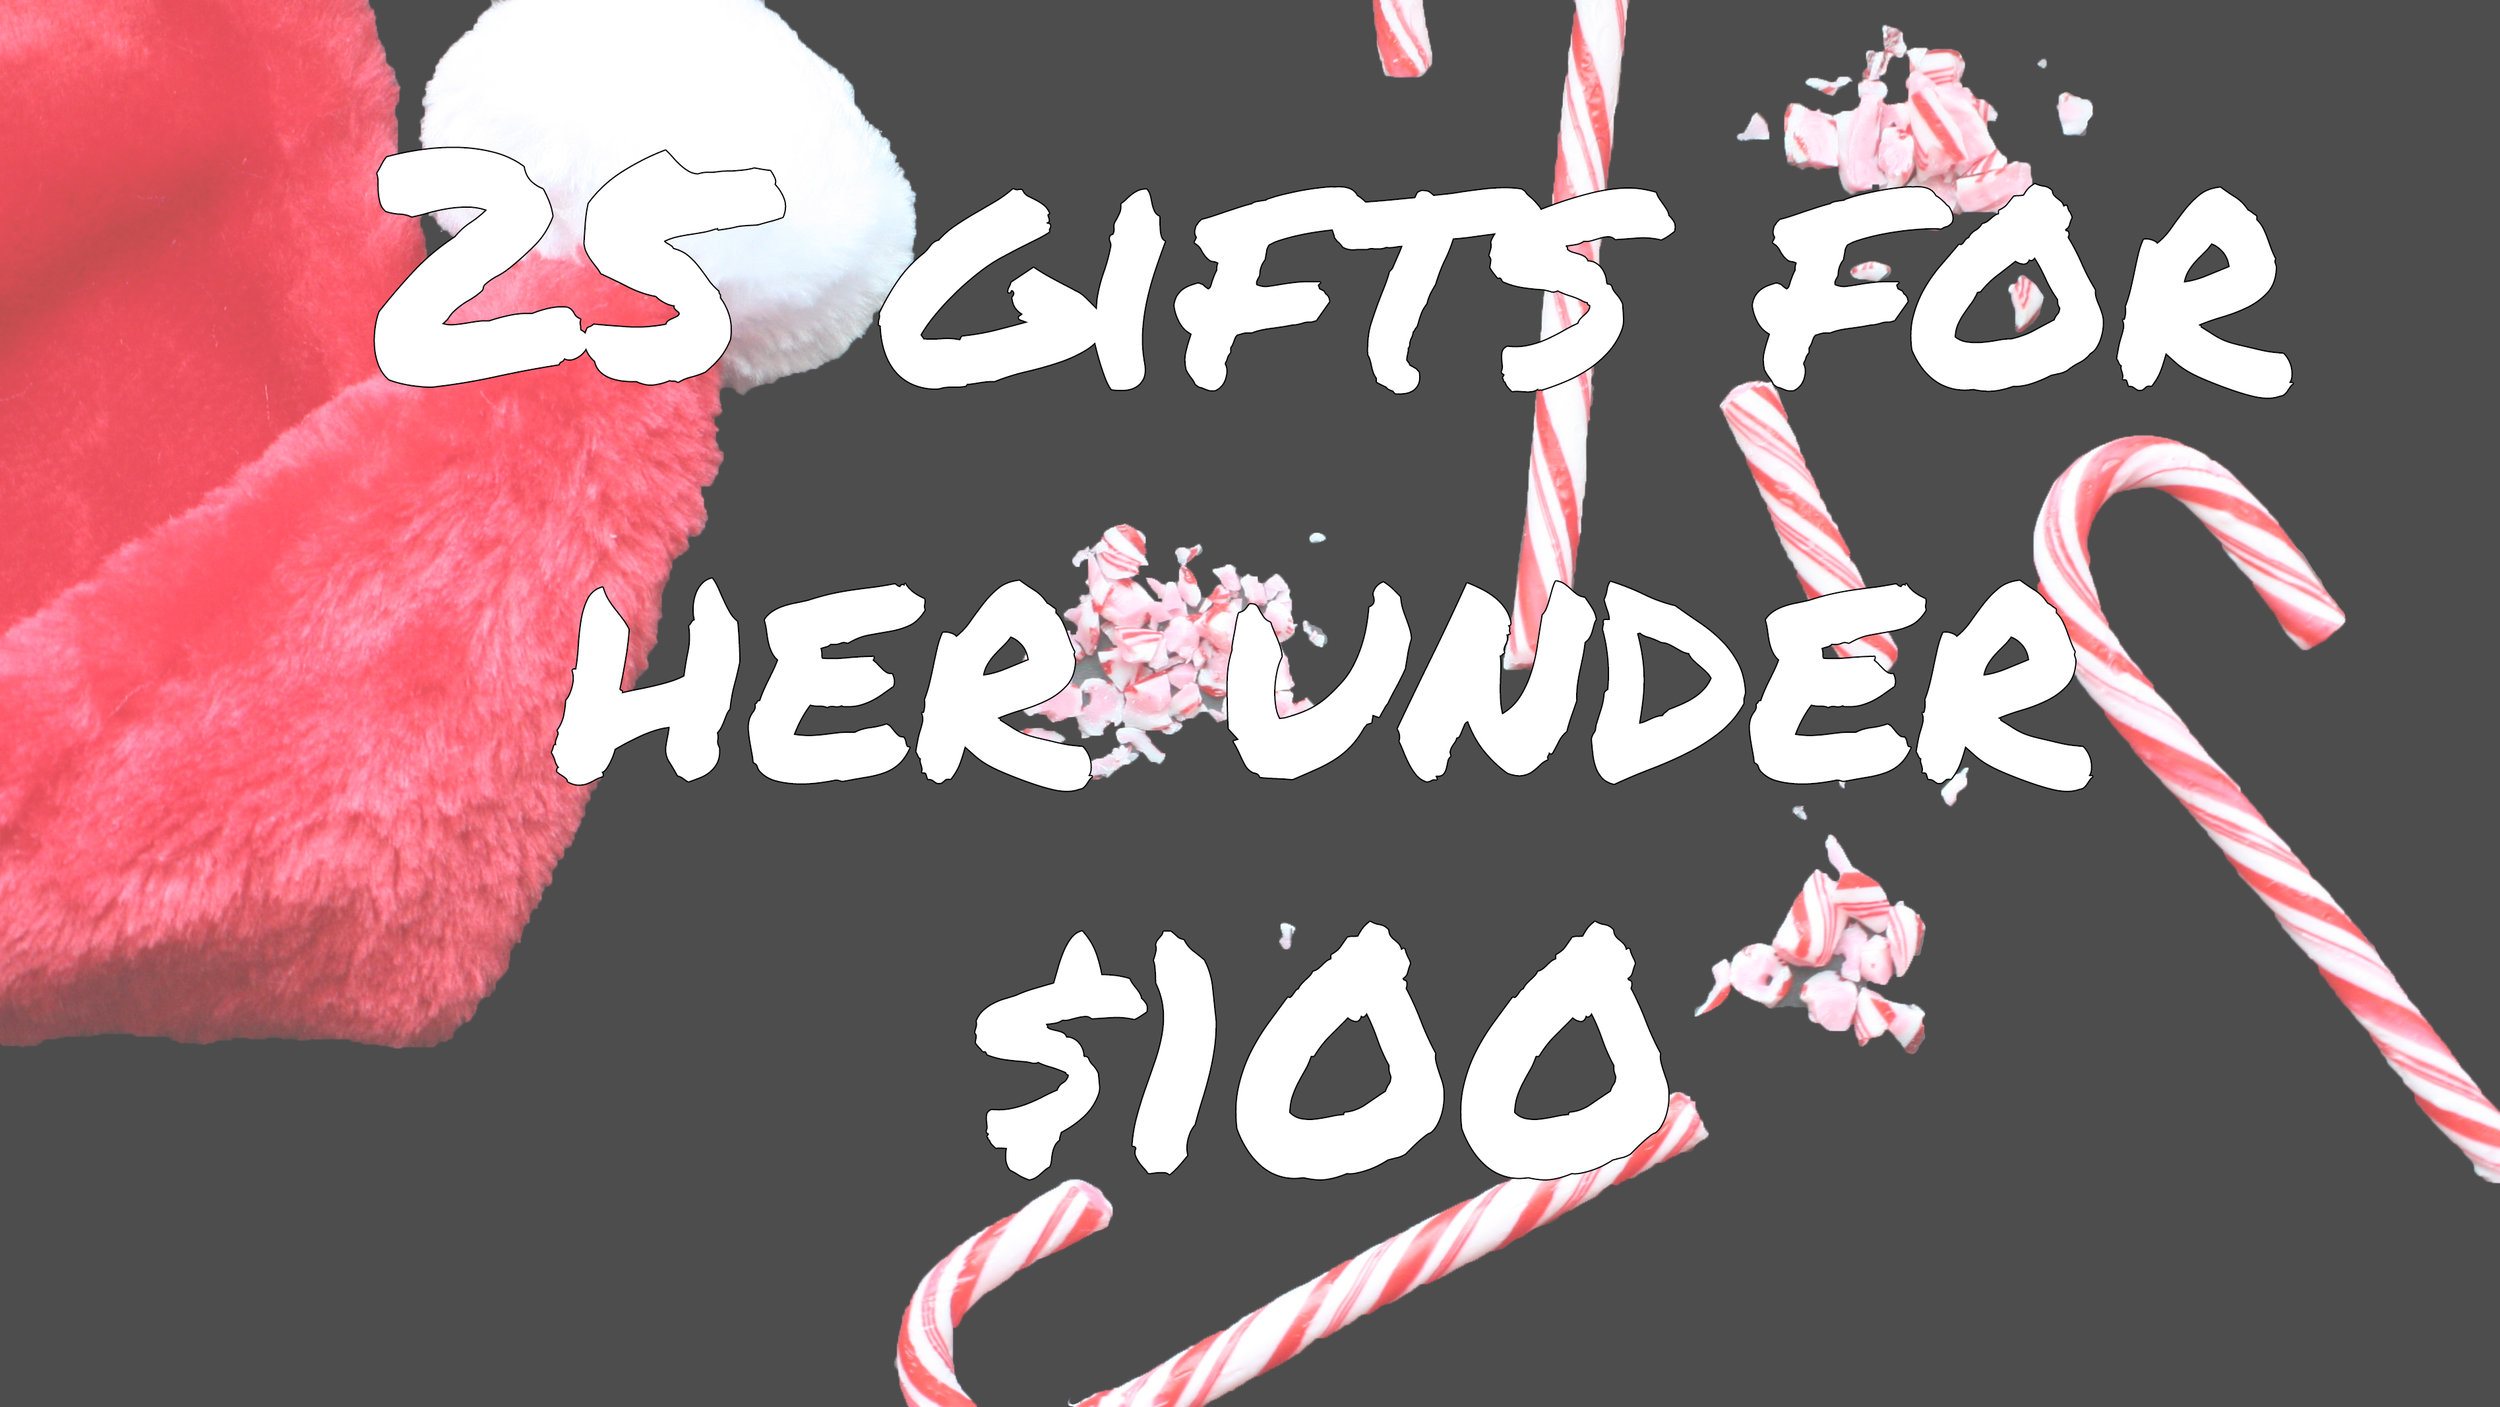 sam-c-perry-25-gifts-for-her-under-100-image.jpg